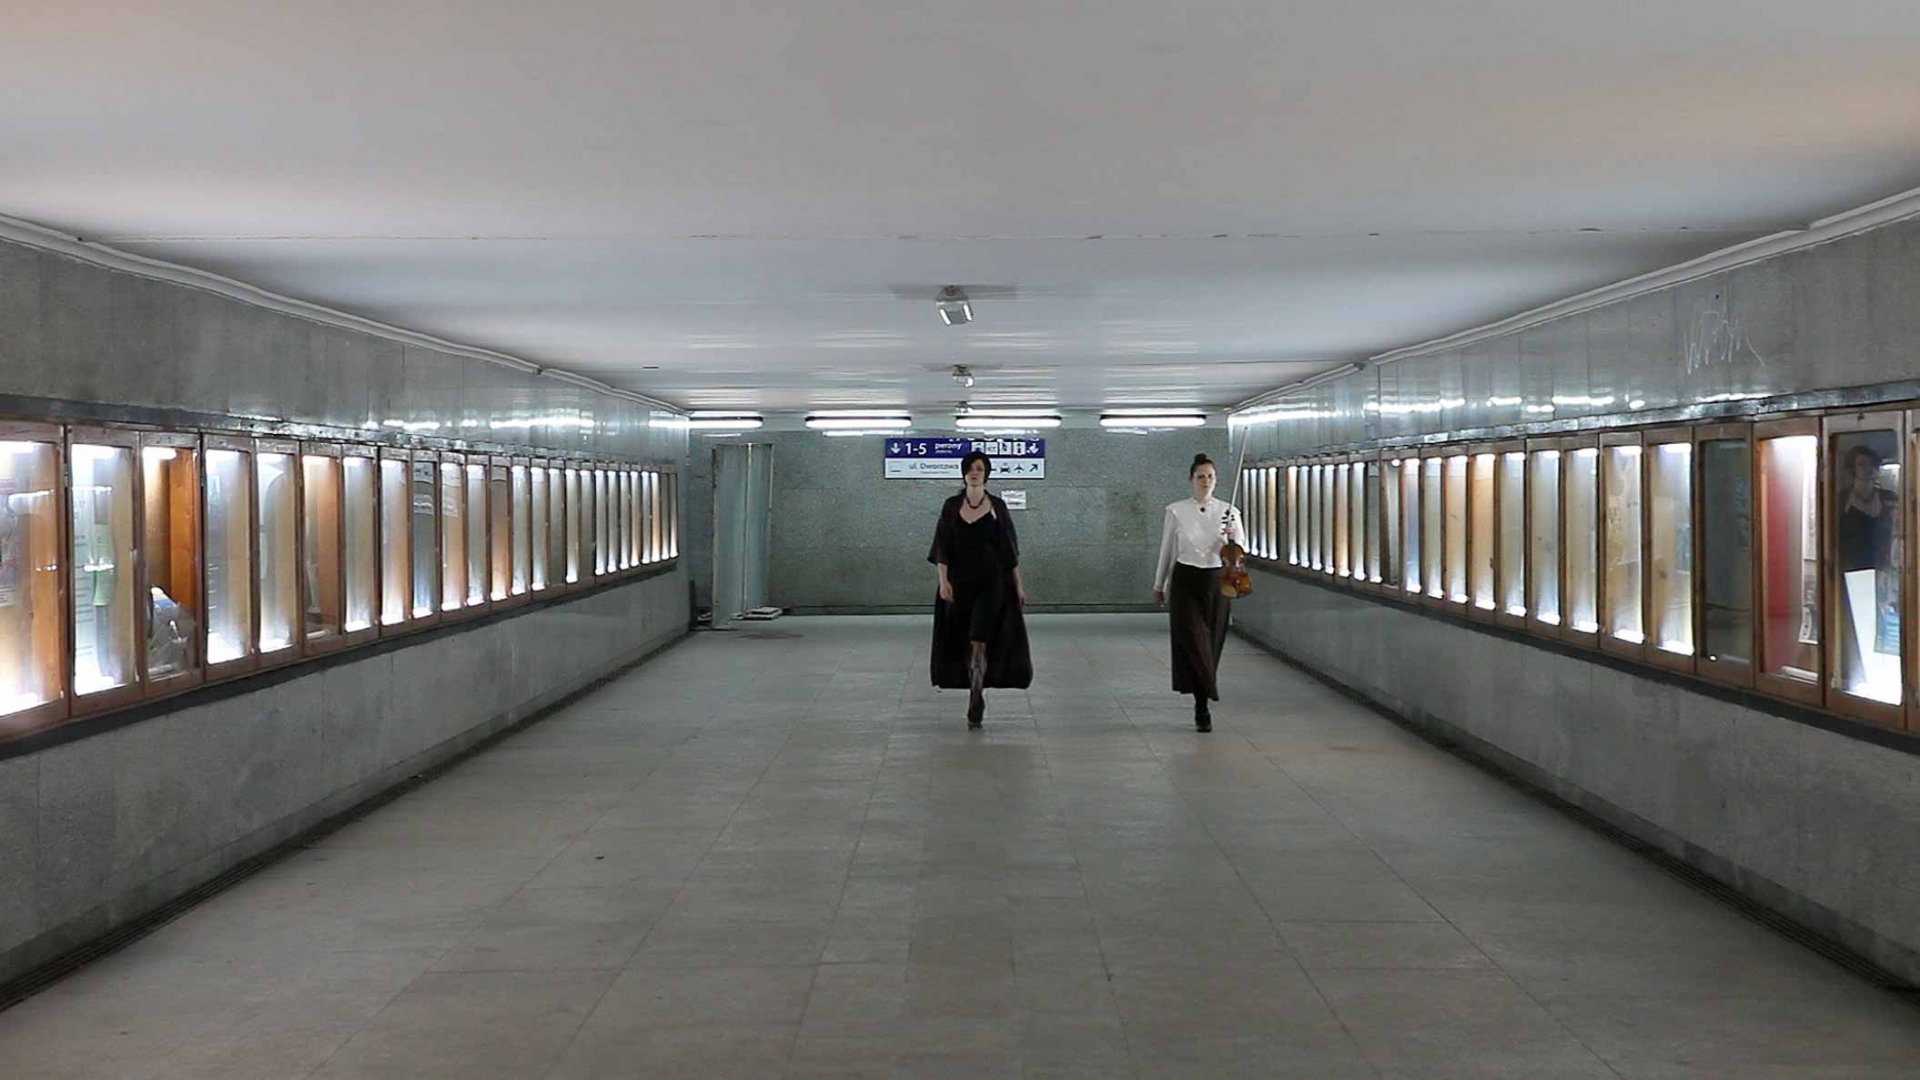 Two woman, one holding a violin and bow, walk towards the camera in an empty concrete hallway